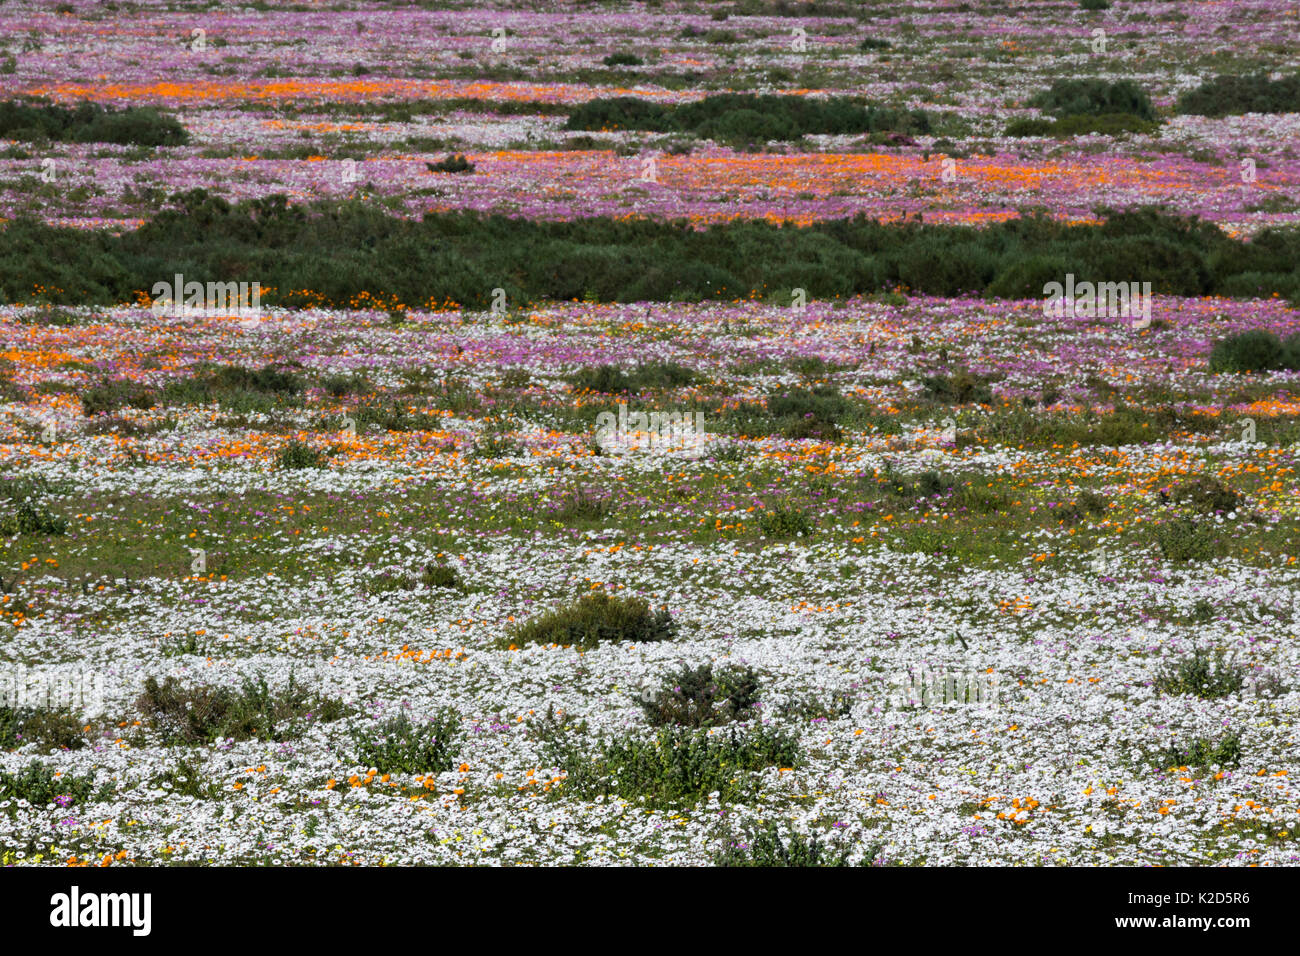 Spring wild flowers, Postberg section, West Coast National Park, Western Cape, South Africa, September 2015 Stock Photo